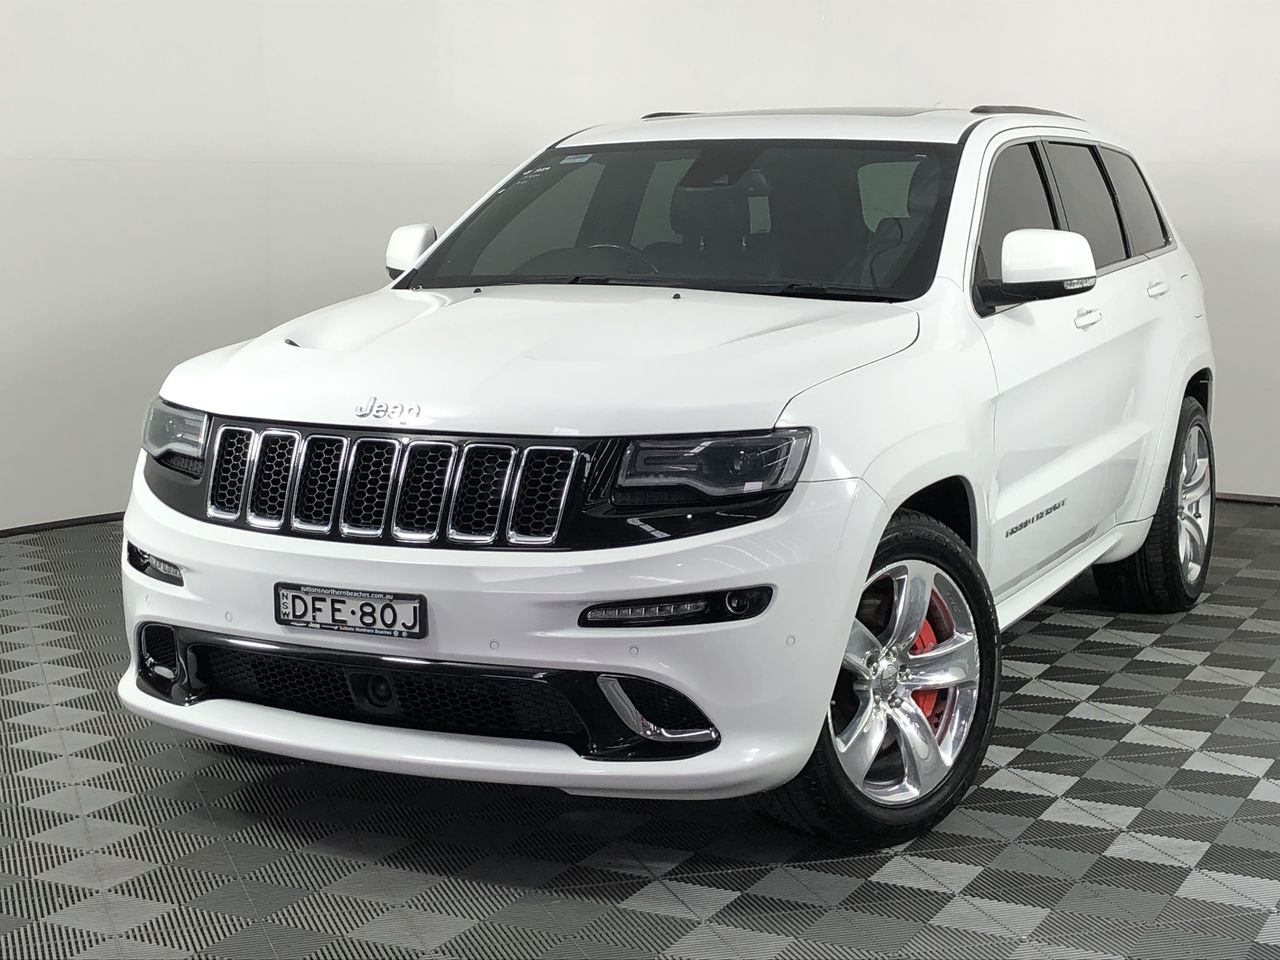 2013 Jeep Grand Cherokee SRT-8 WK Automatic - 8 Speed Wagon